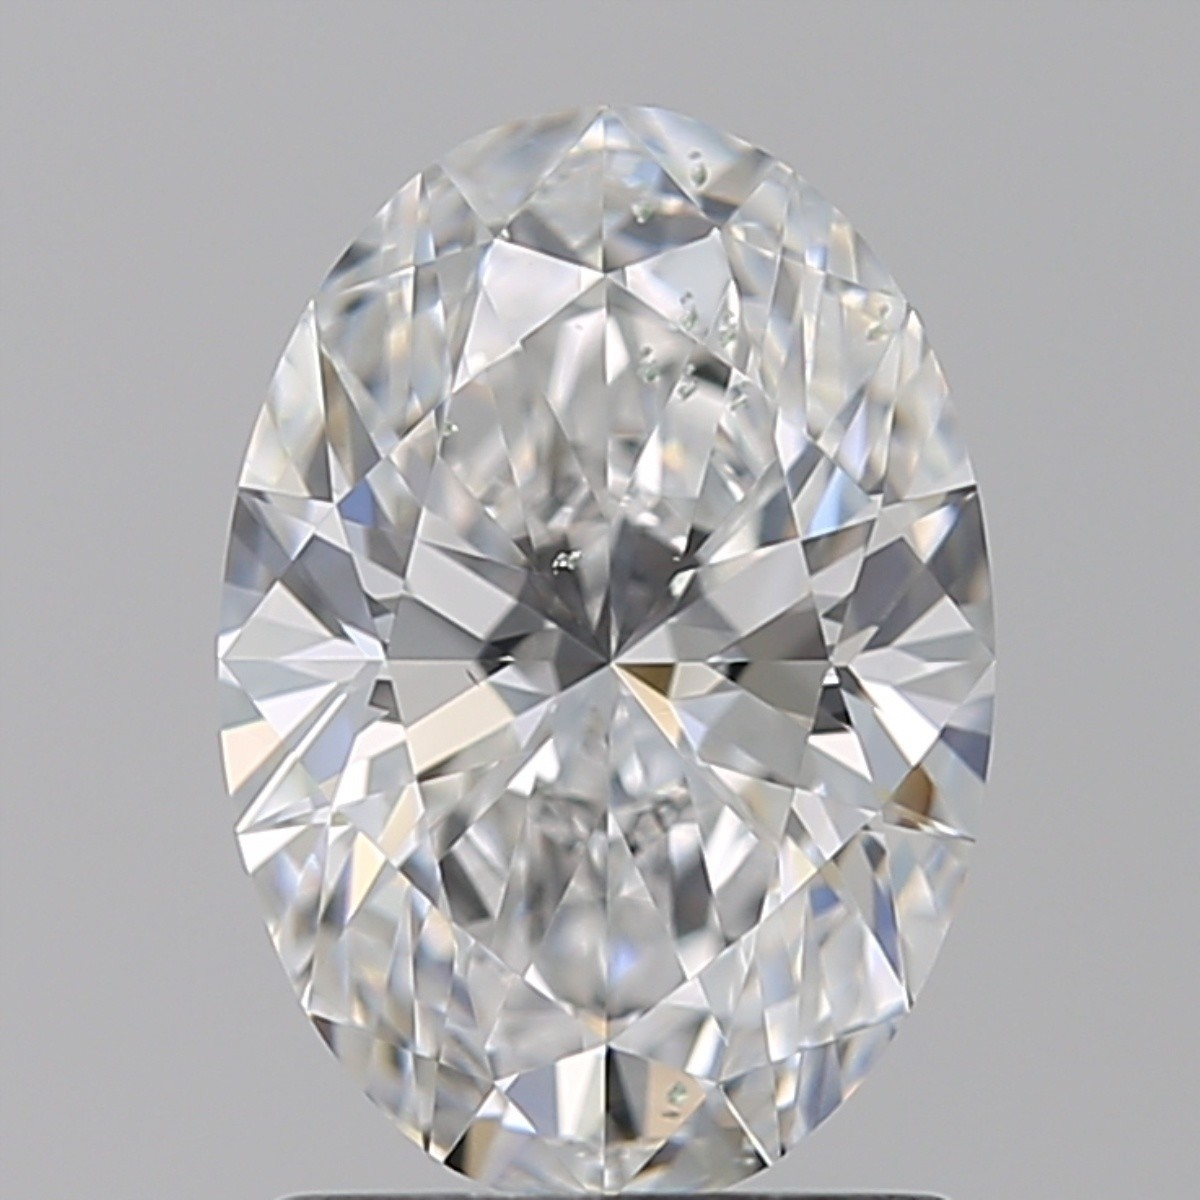 1.31 Carat Oval Diamond (E/SI1)